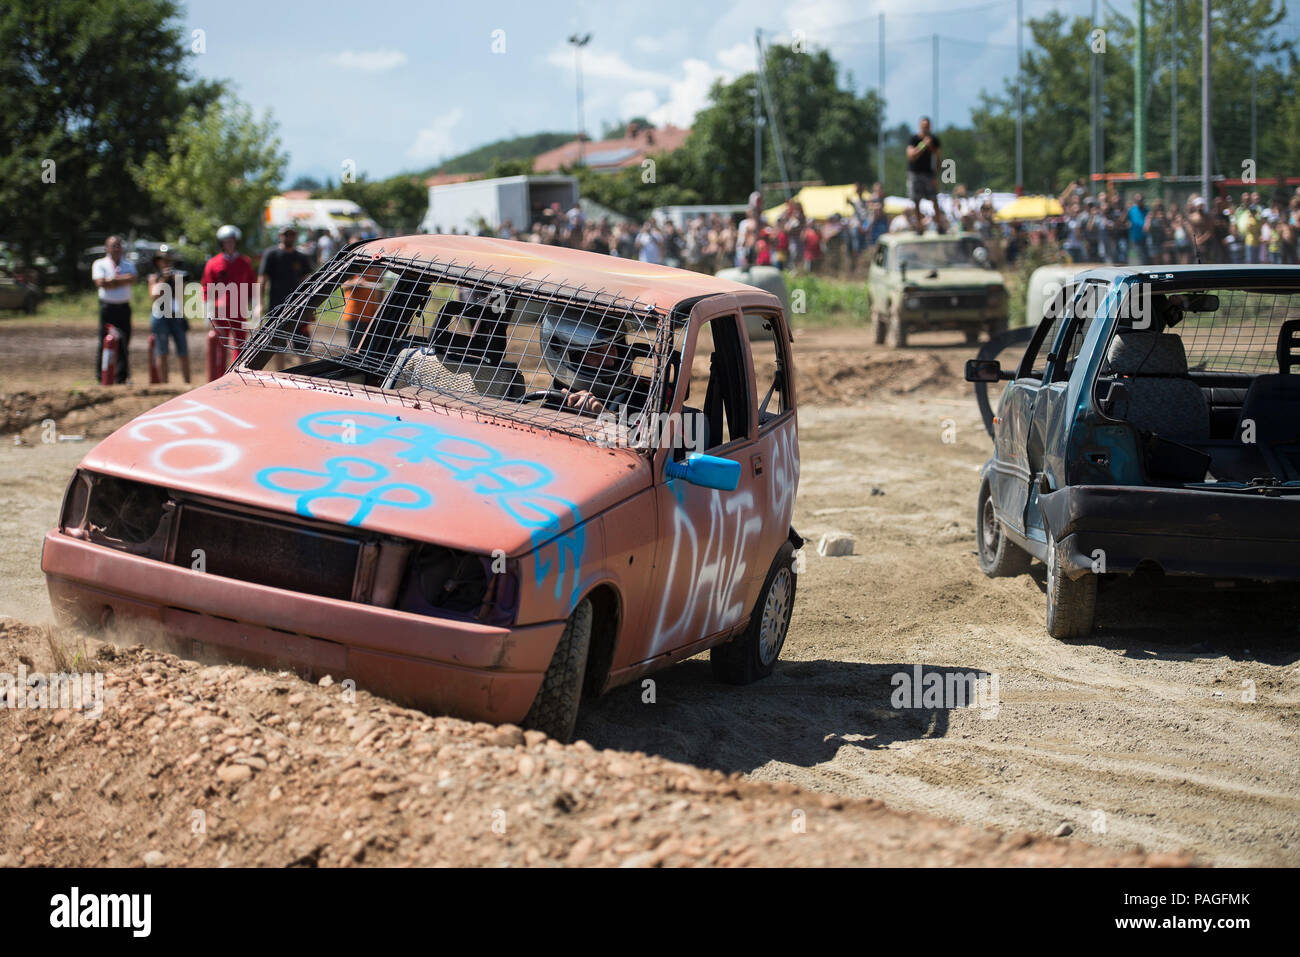 Italian Derby Stock Photos Images Alamy Demolition Car Wiring Diagram Vehicles Collide At A